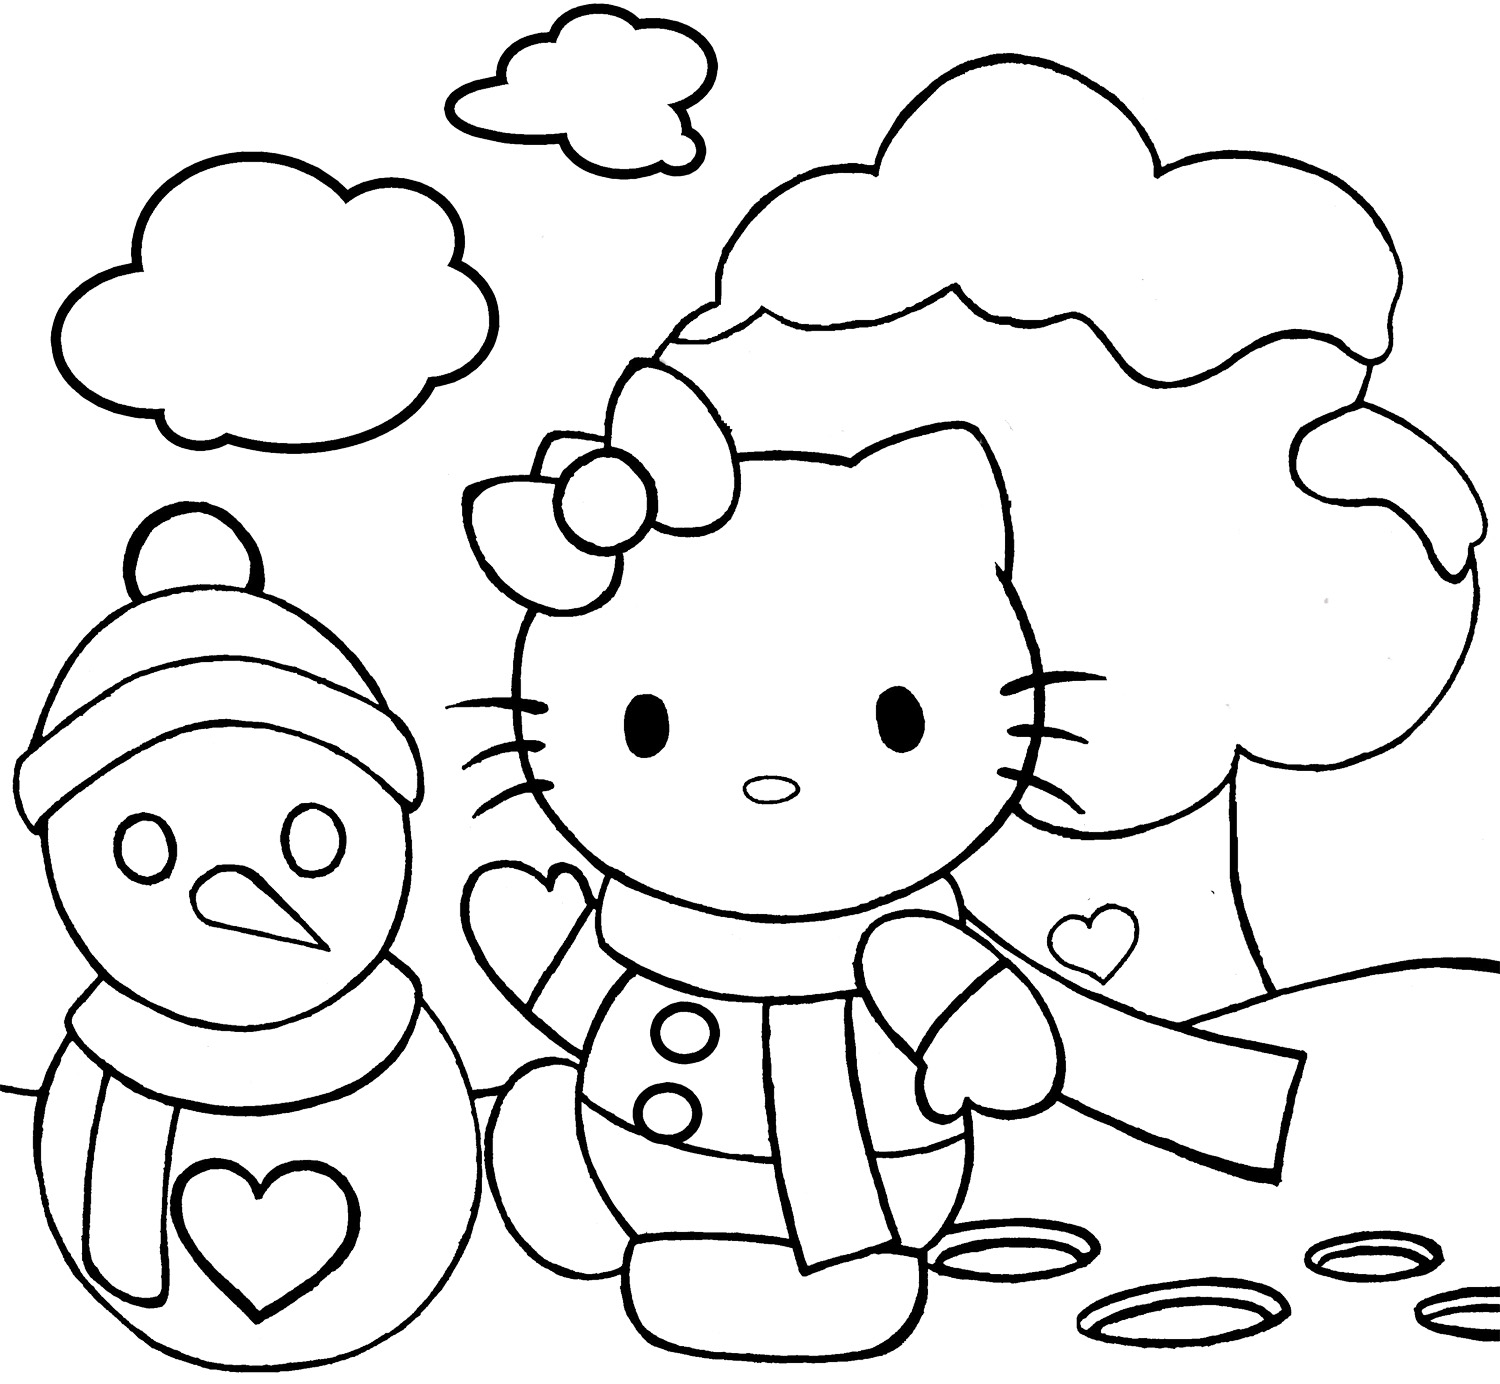 hello kitty christmas coloring pictures hello kitty christmas coloring sheets christmas hello coloring kitty pictures